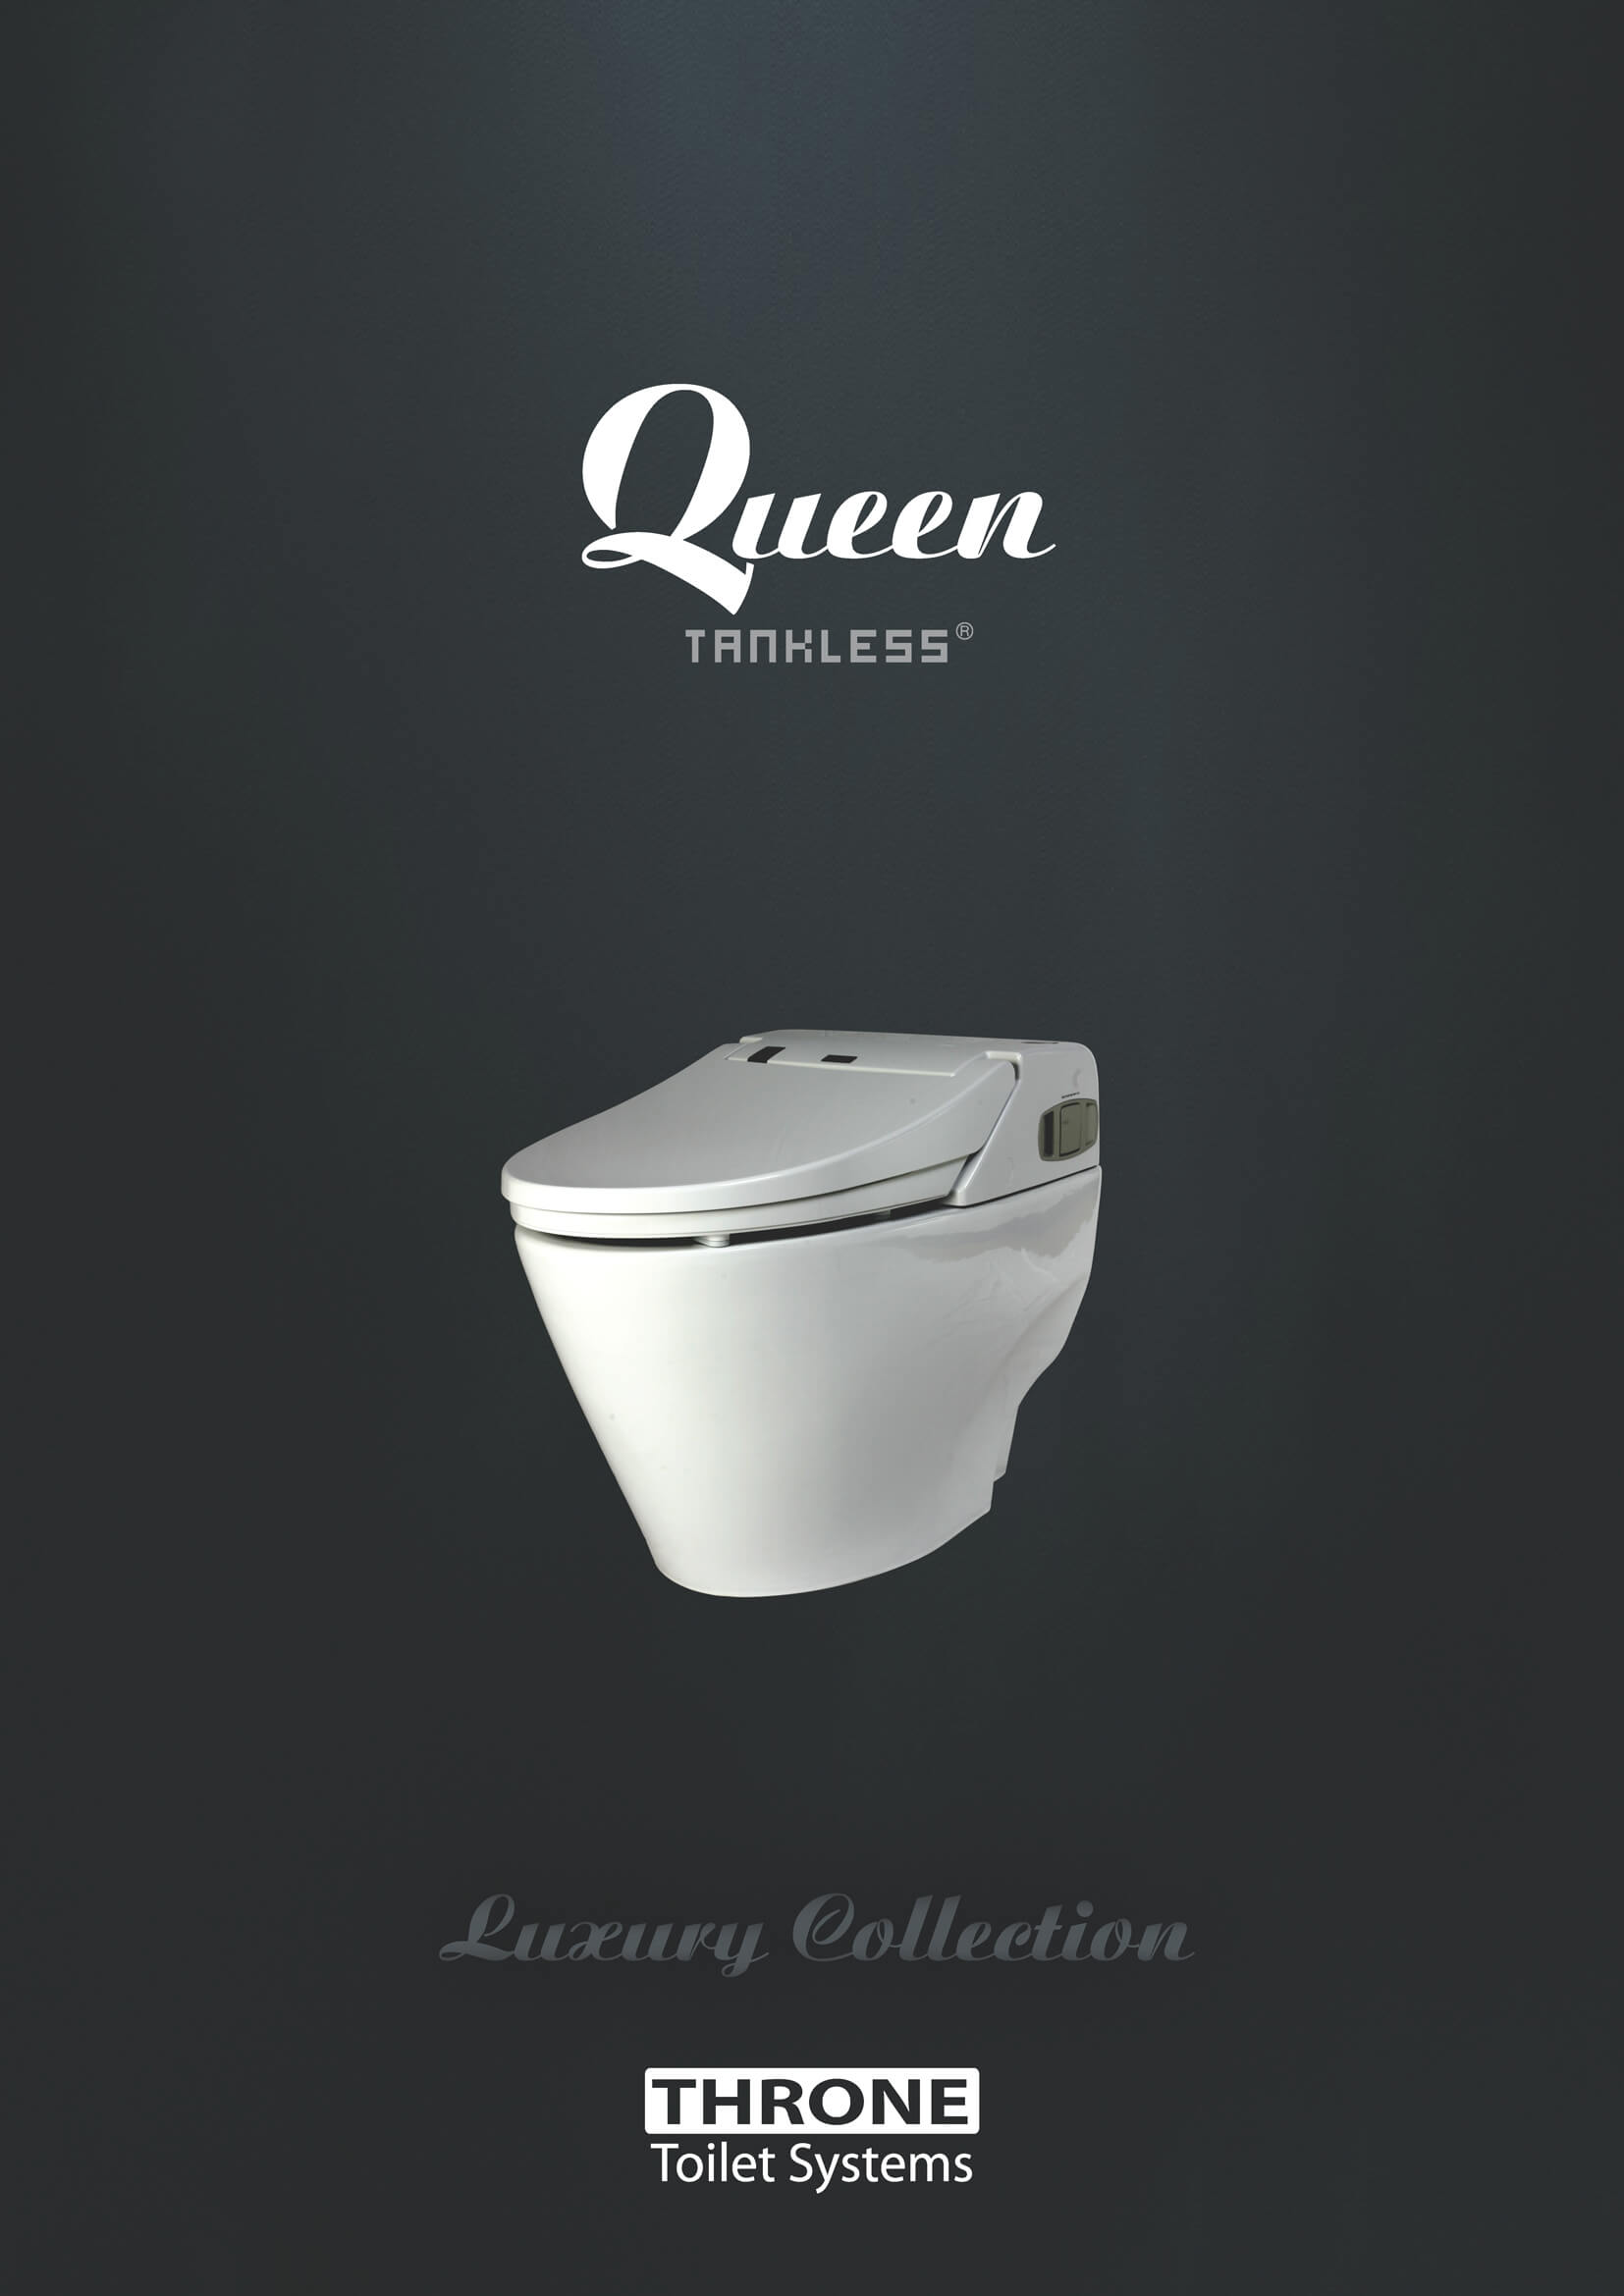 queen-brochure-throne-2016-page-1.jpg